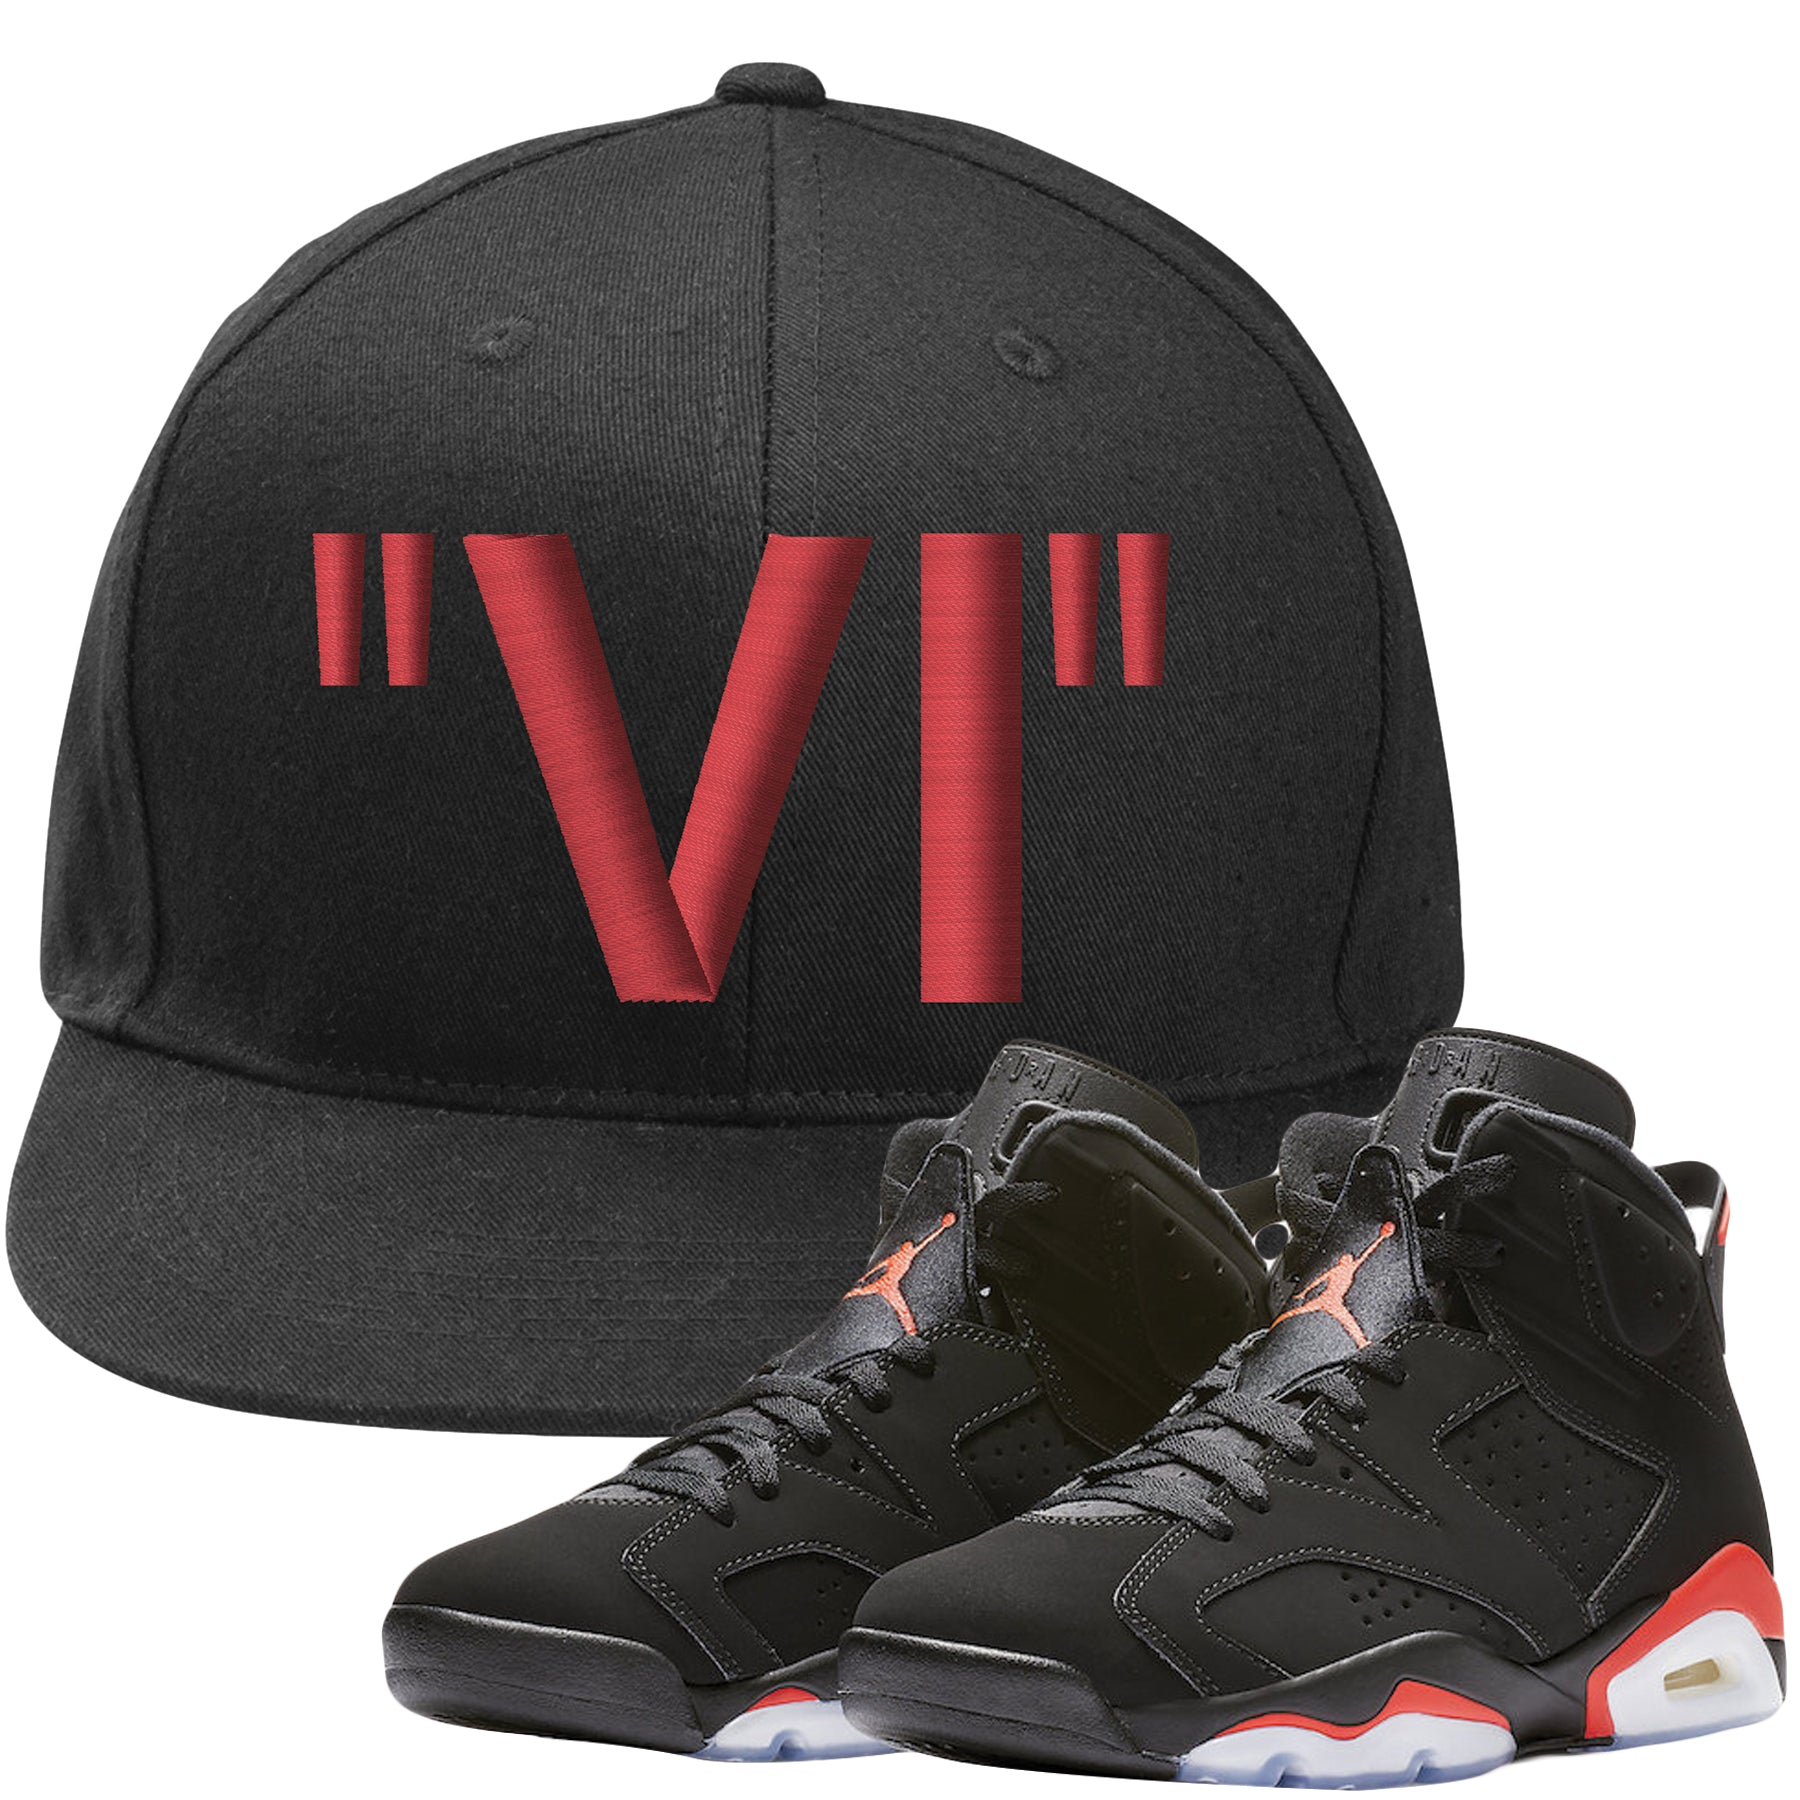 608e87871a1c3e The Jordan 6 Infrared Snapback Hat is custom designed to perfectly match  the retro Jordan 6